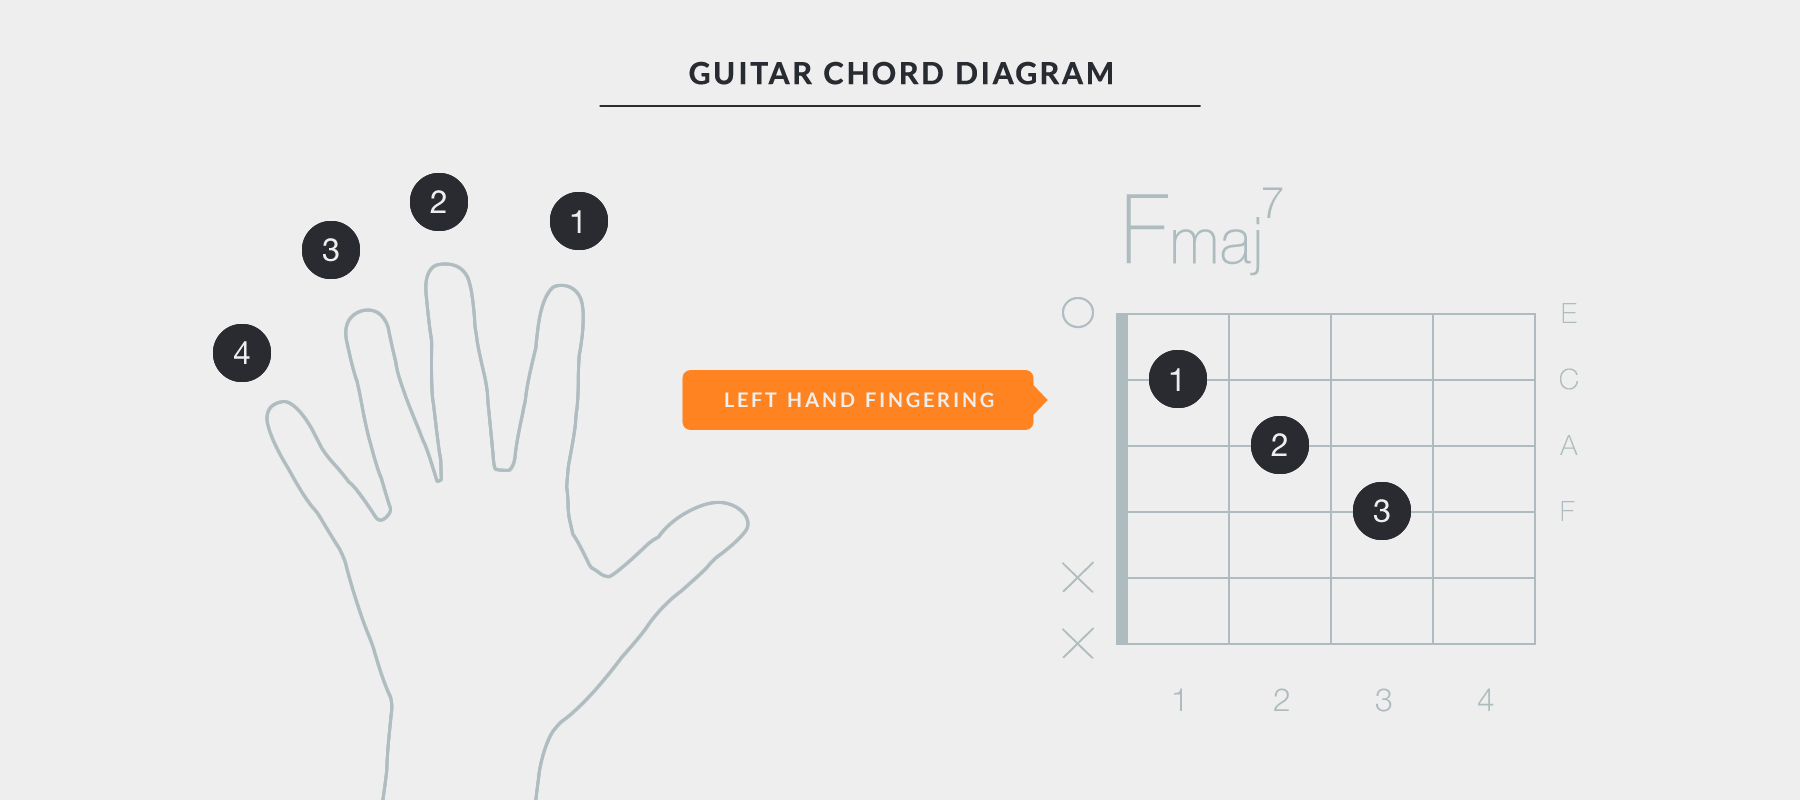 Do I Wanna Know Chords 10 Tips How To Play The Guitar With Good Technique